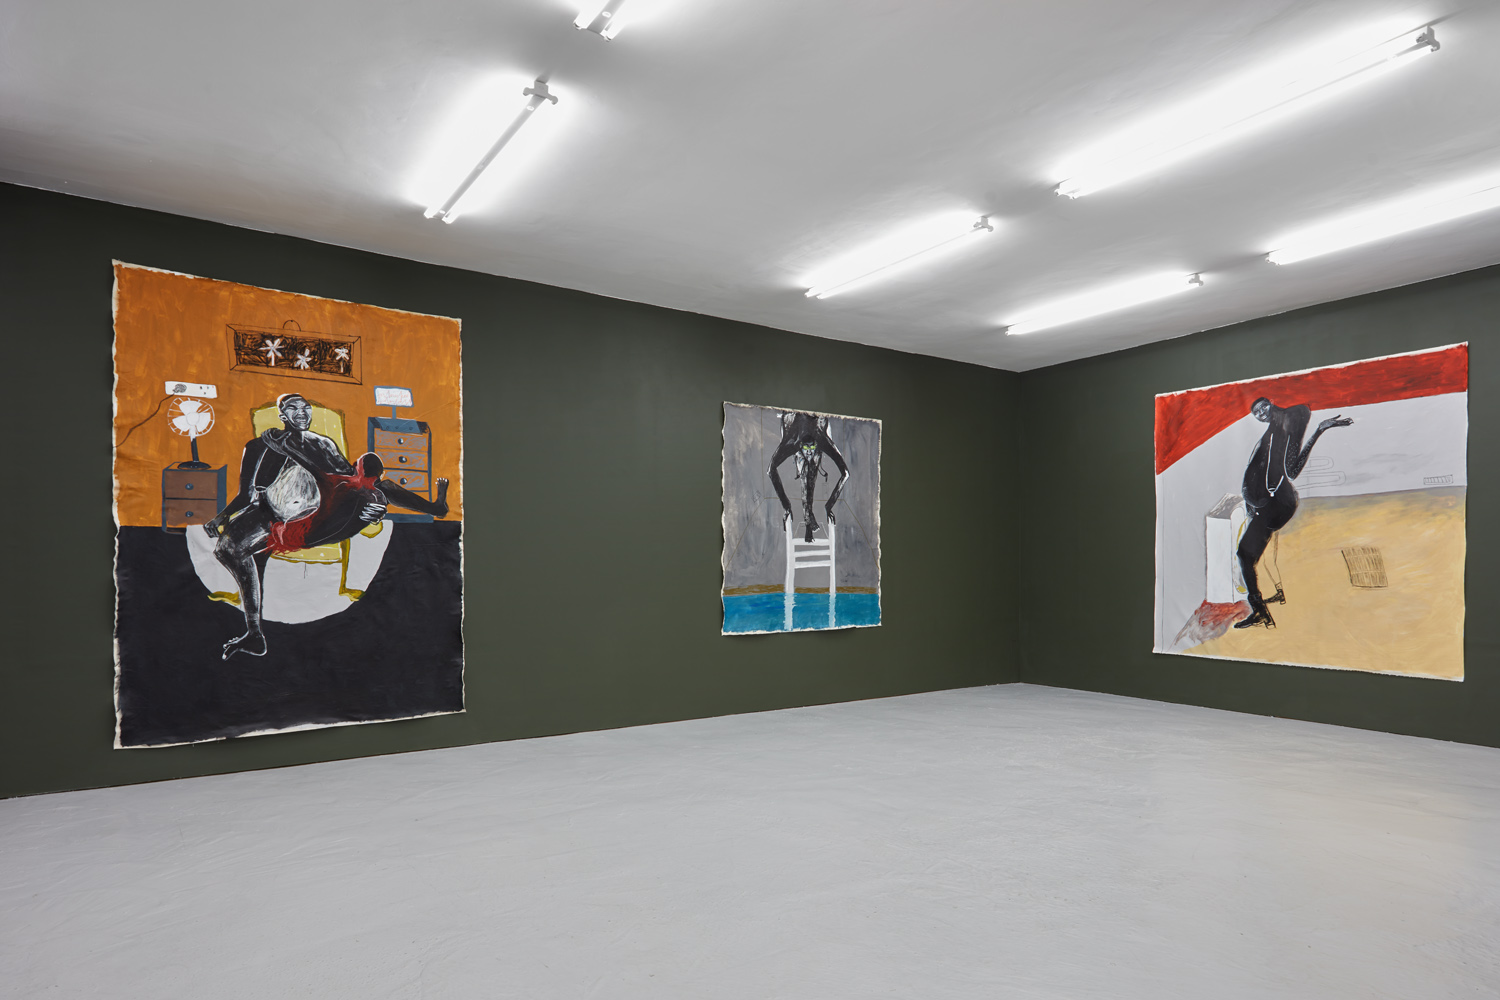 Installation view 7 Shadi Al-Atallah 'Fuck, I'm stuck!' J HAMMOND PROJECTS London 2019 low res.jpg